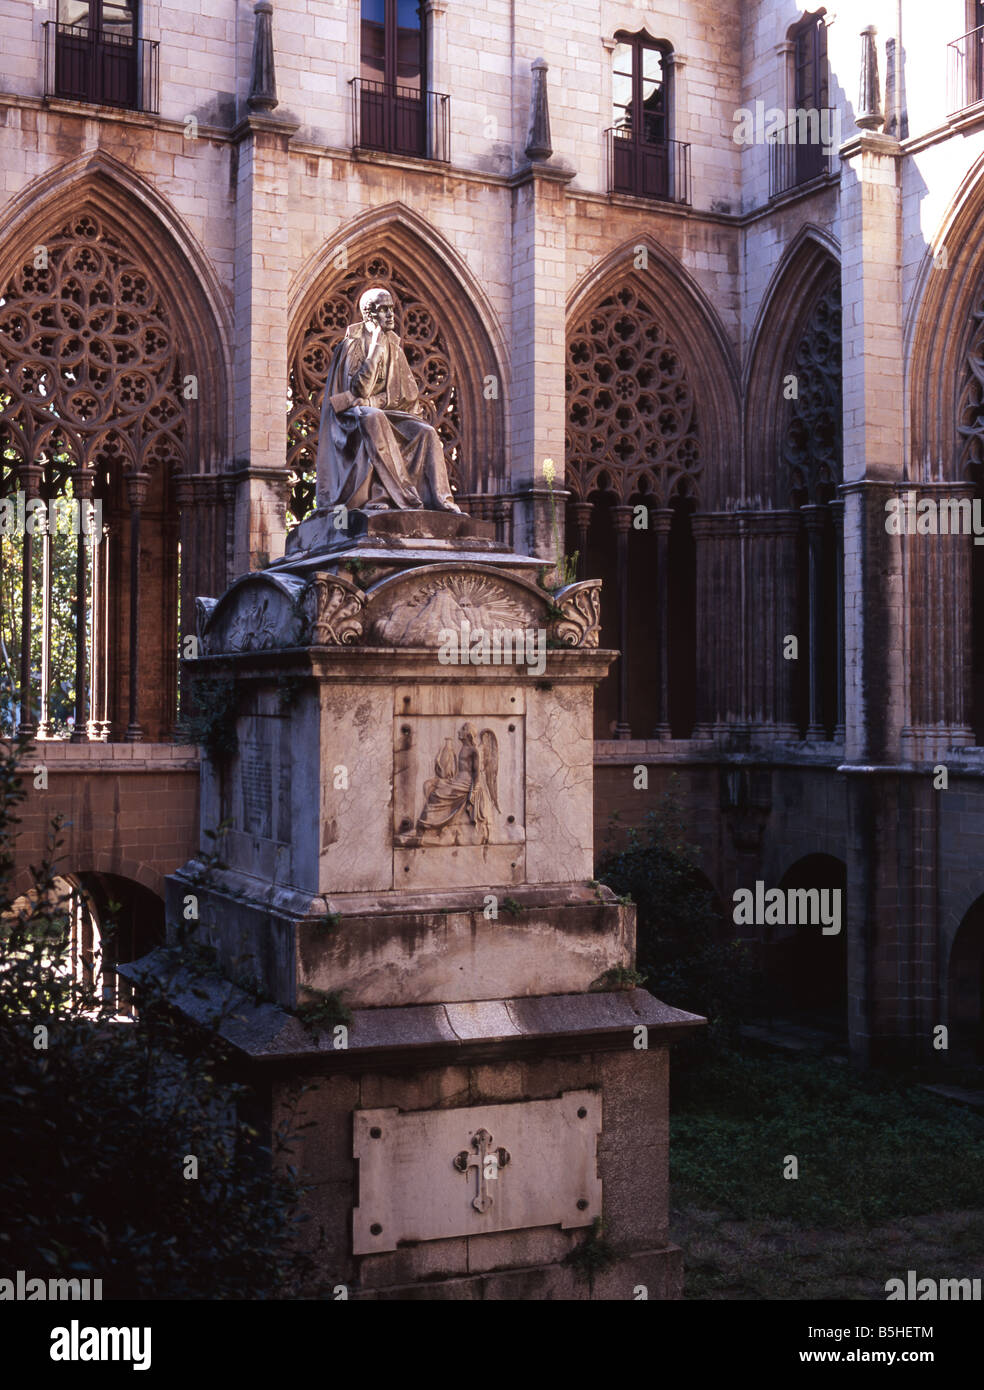 Cloister, Cathedral of Vic, Catalonia Spain - Stock Image